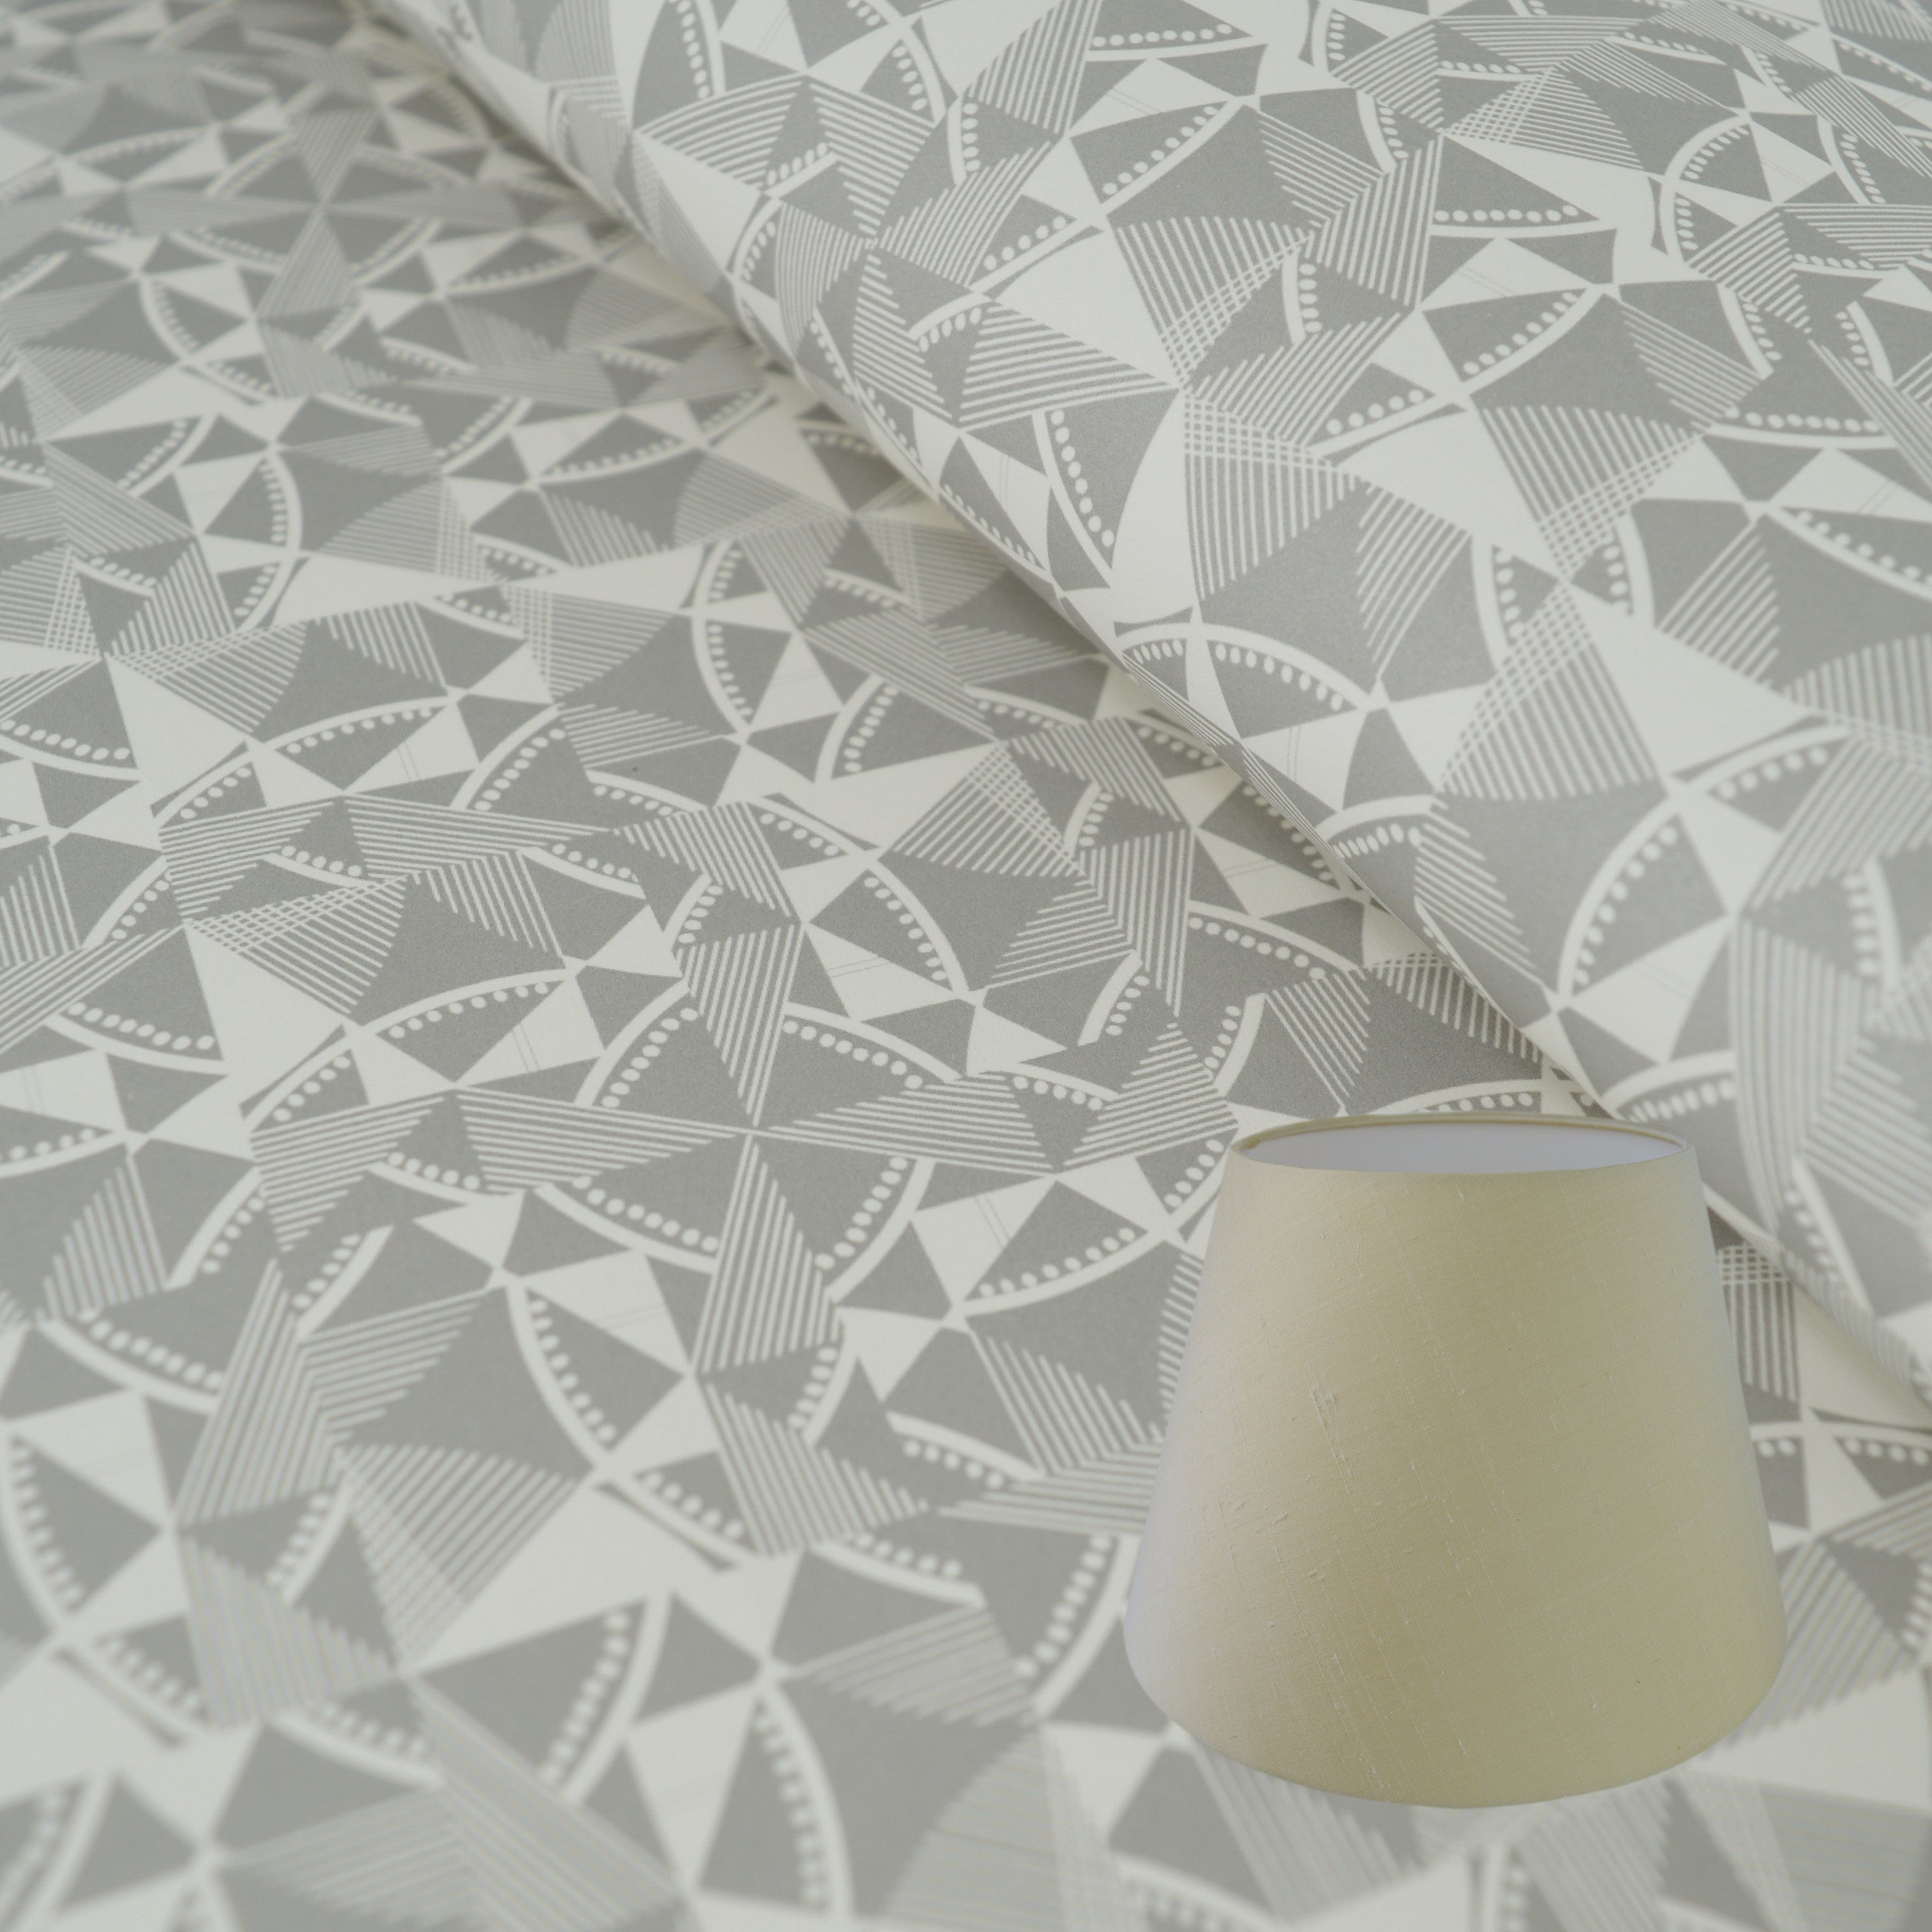 Munro and Kerr grey printed geometric Esme Winter paper for an empire lampshade